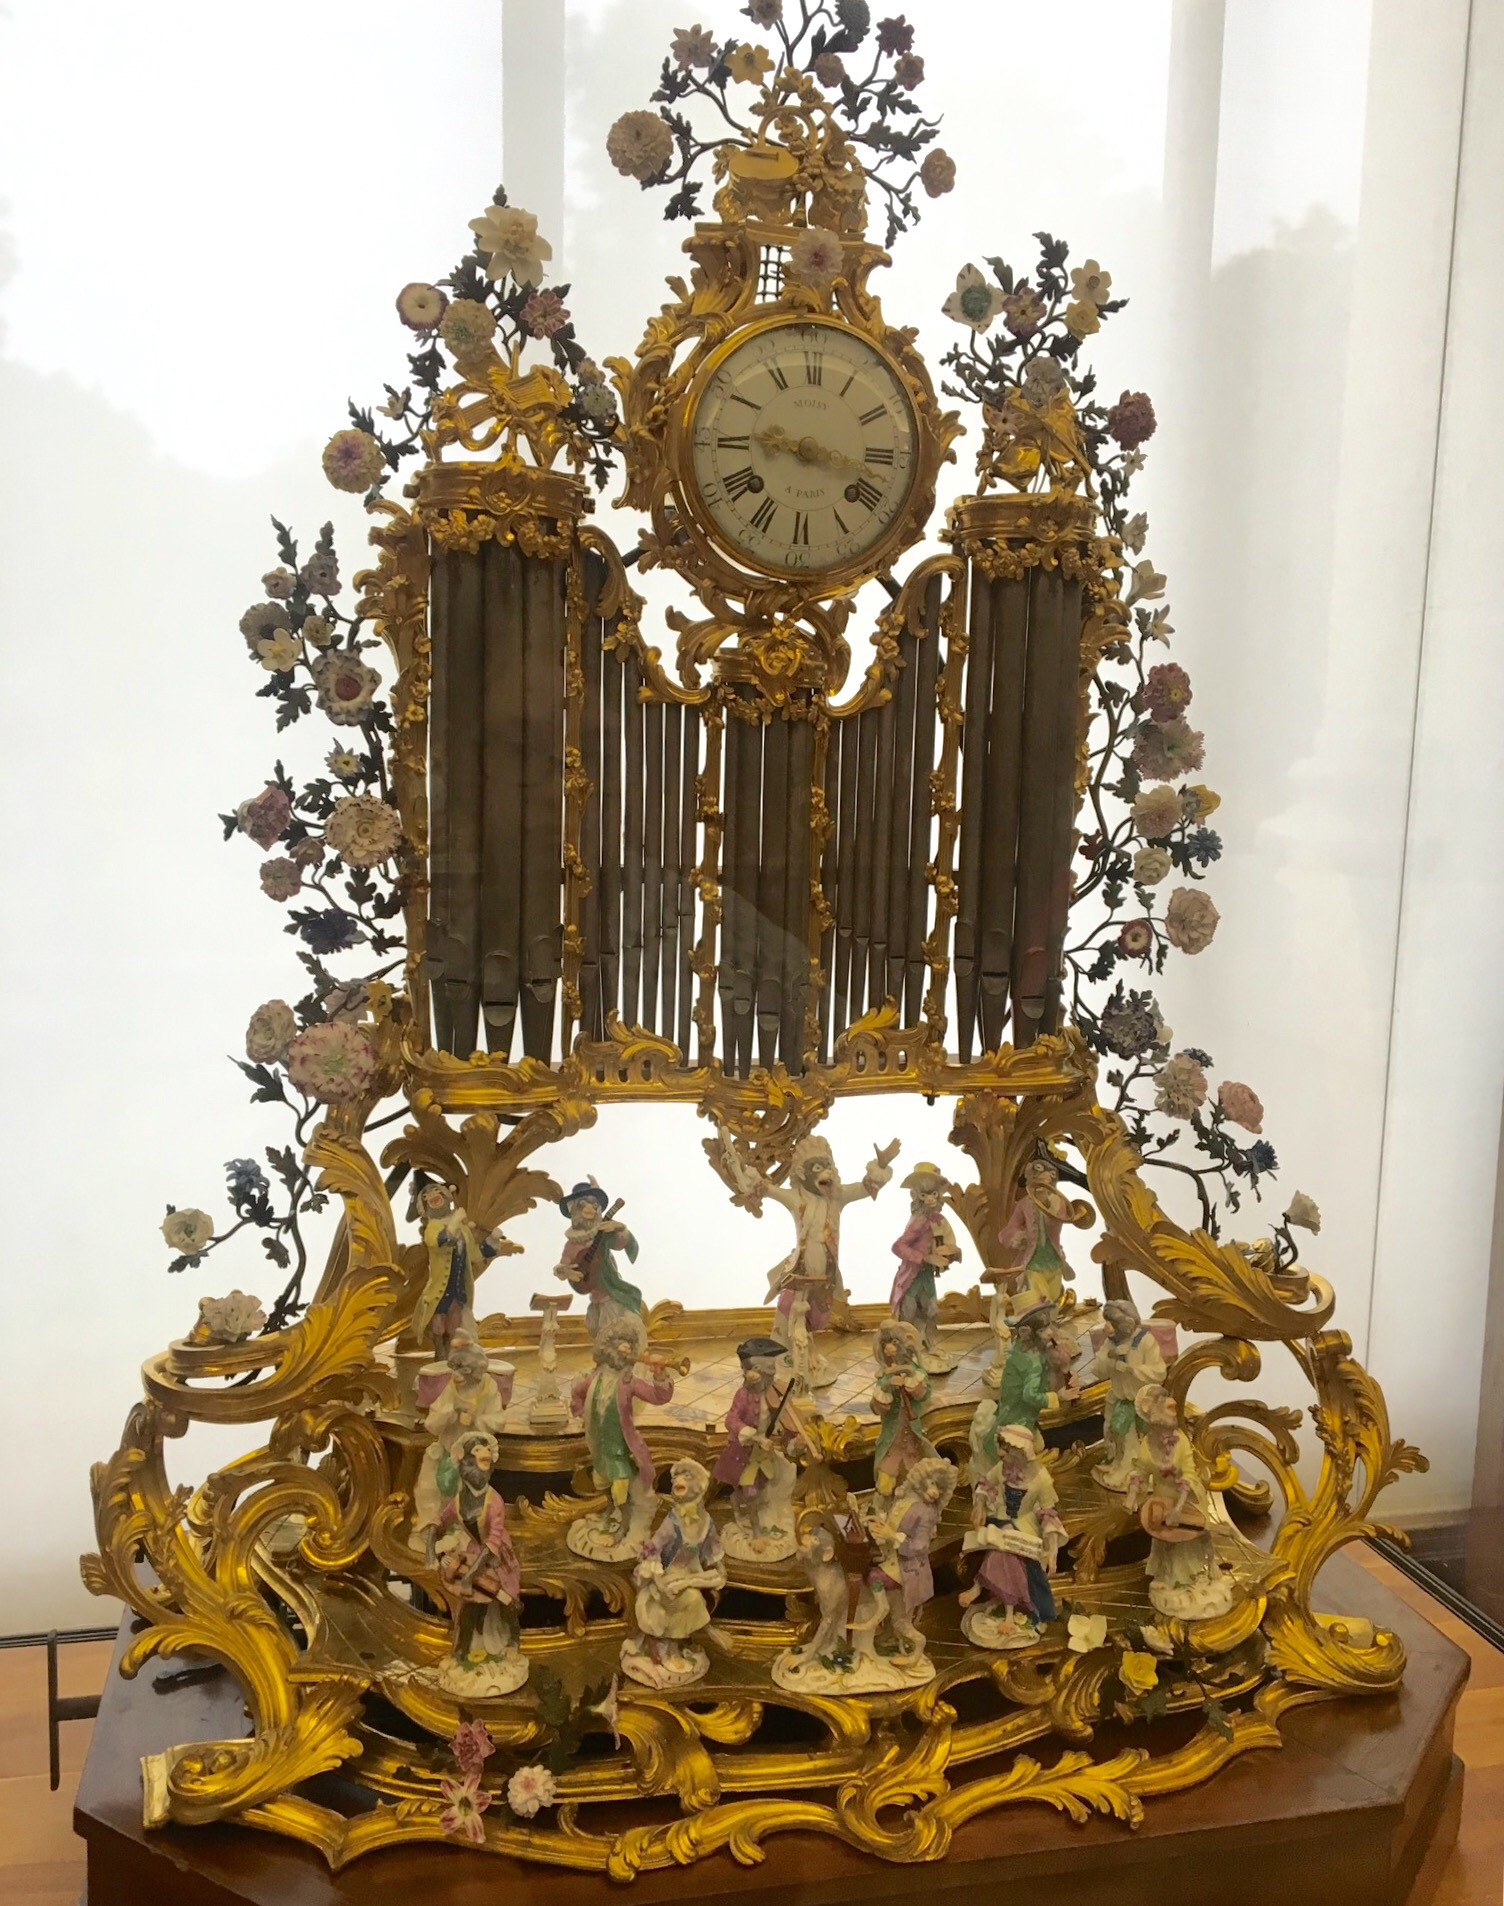 "Trying to help my adult daughter pack reminds me of the saying ""not my circus, not my monkeys"" - artistically represented here by this Louis the 15th clock at Petit Palais, by multiple artisits, (ceramics by Kandler, Reinicke) depicting an overmatched ceramic monkey band conductor and his ""circus""."